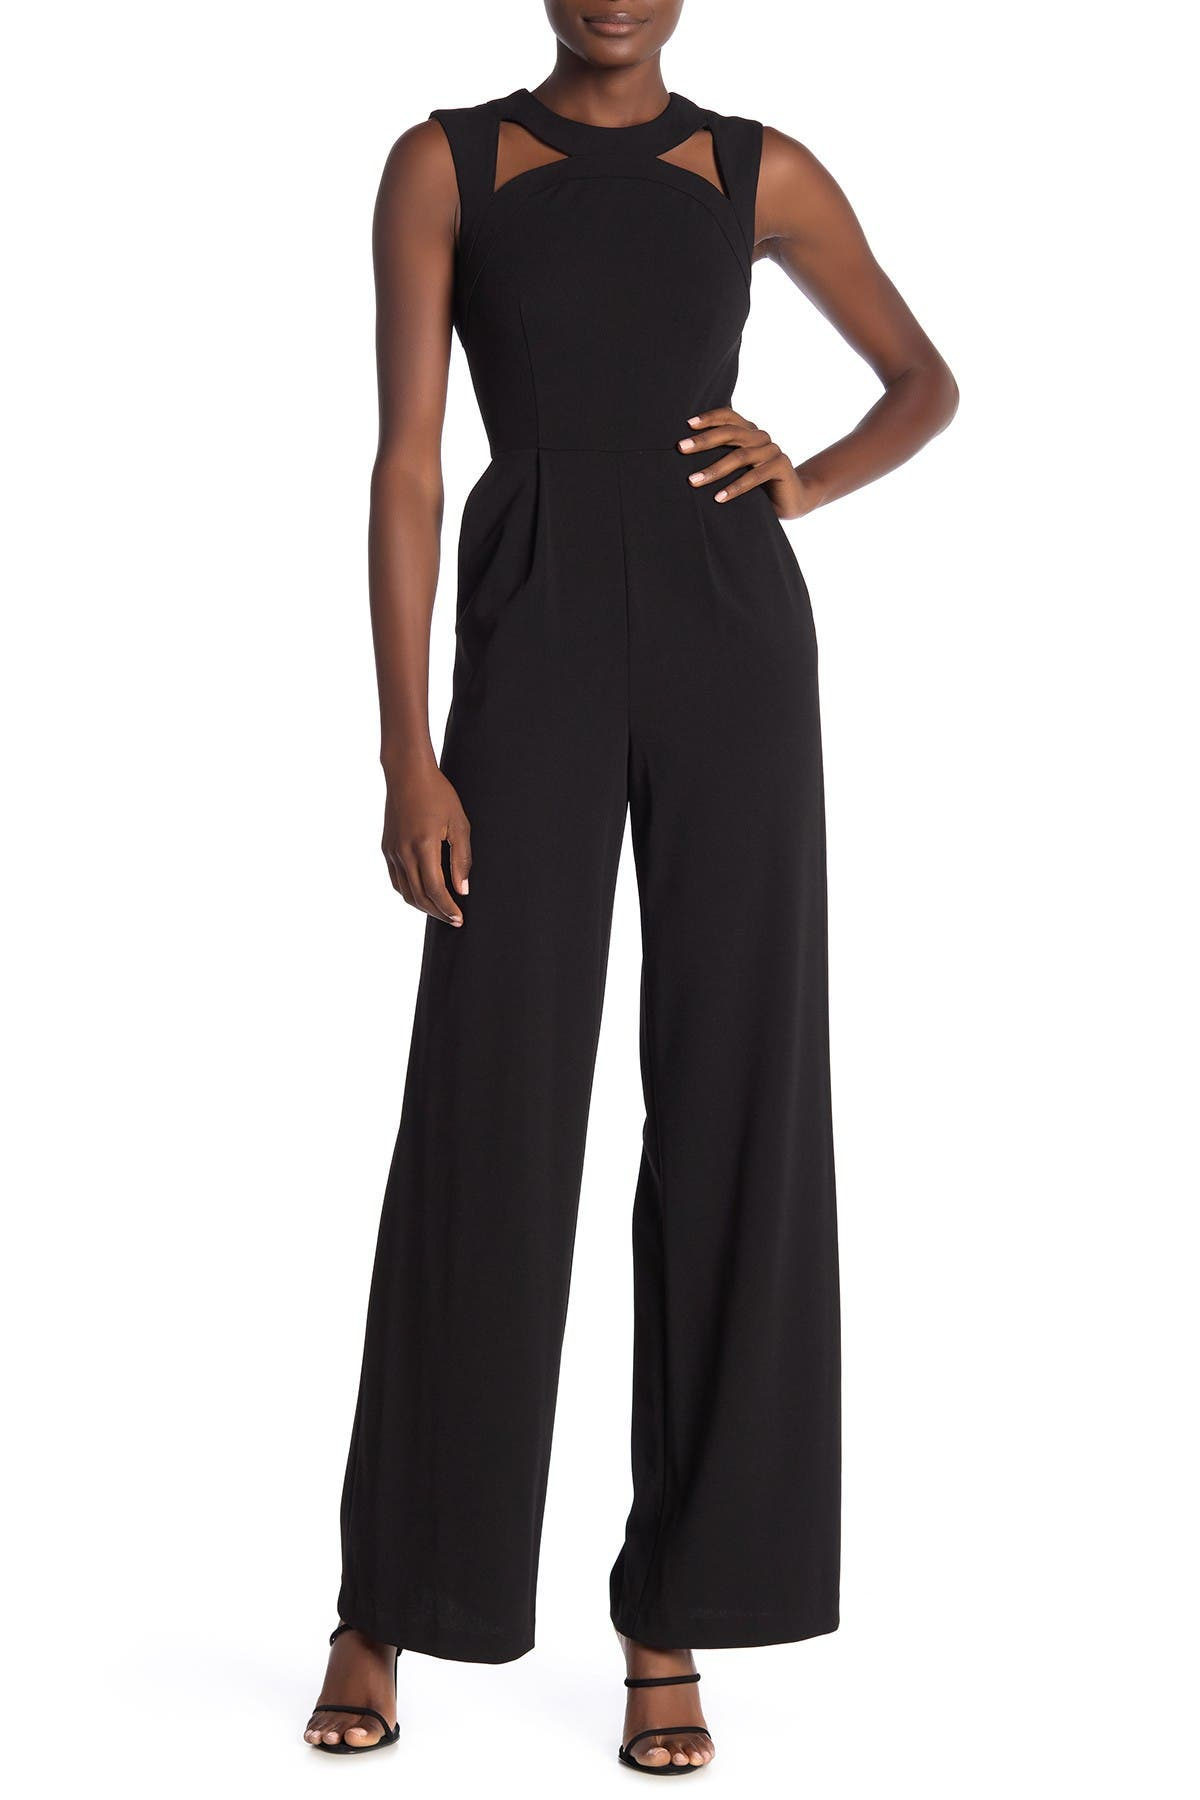 Image of Calvin Klein Cutout Sleeveless Crepe Jumpsuit